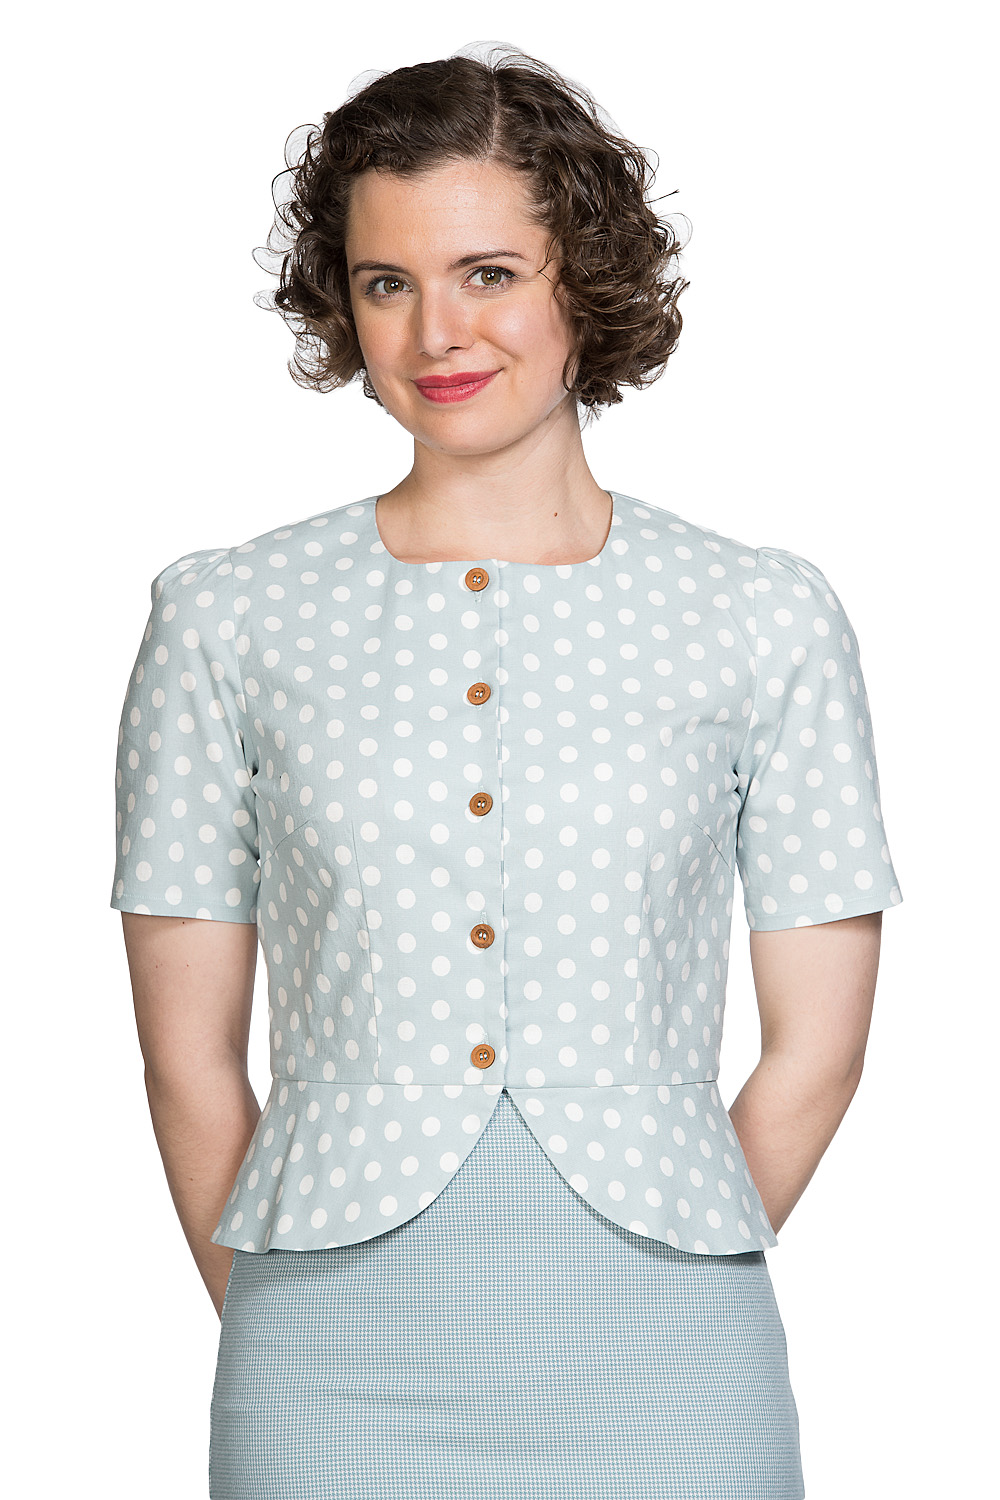 Banned Retro 60s Spotlight Blouse In Mint